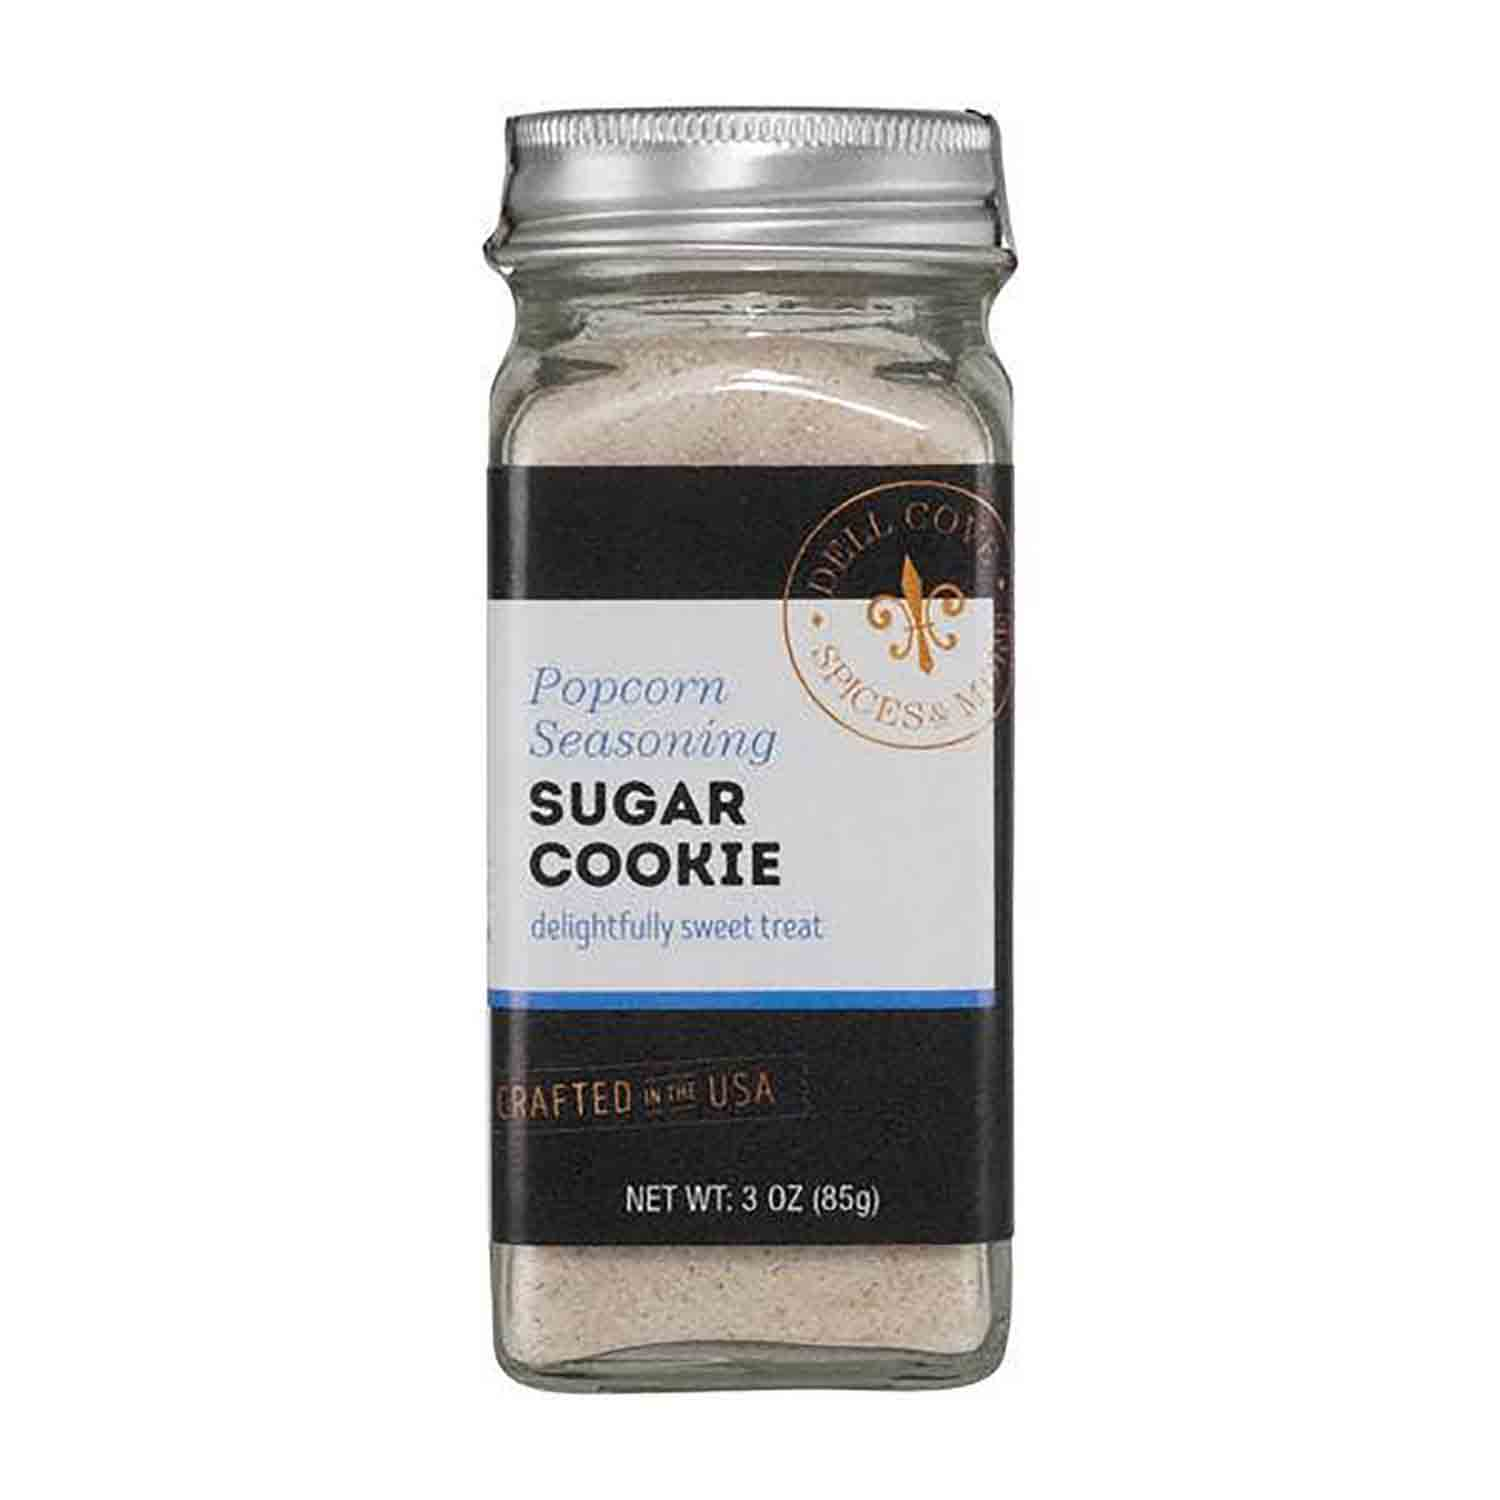 Sugar Cookie Popcorn Seasoning